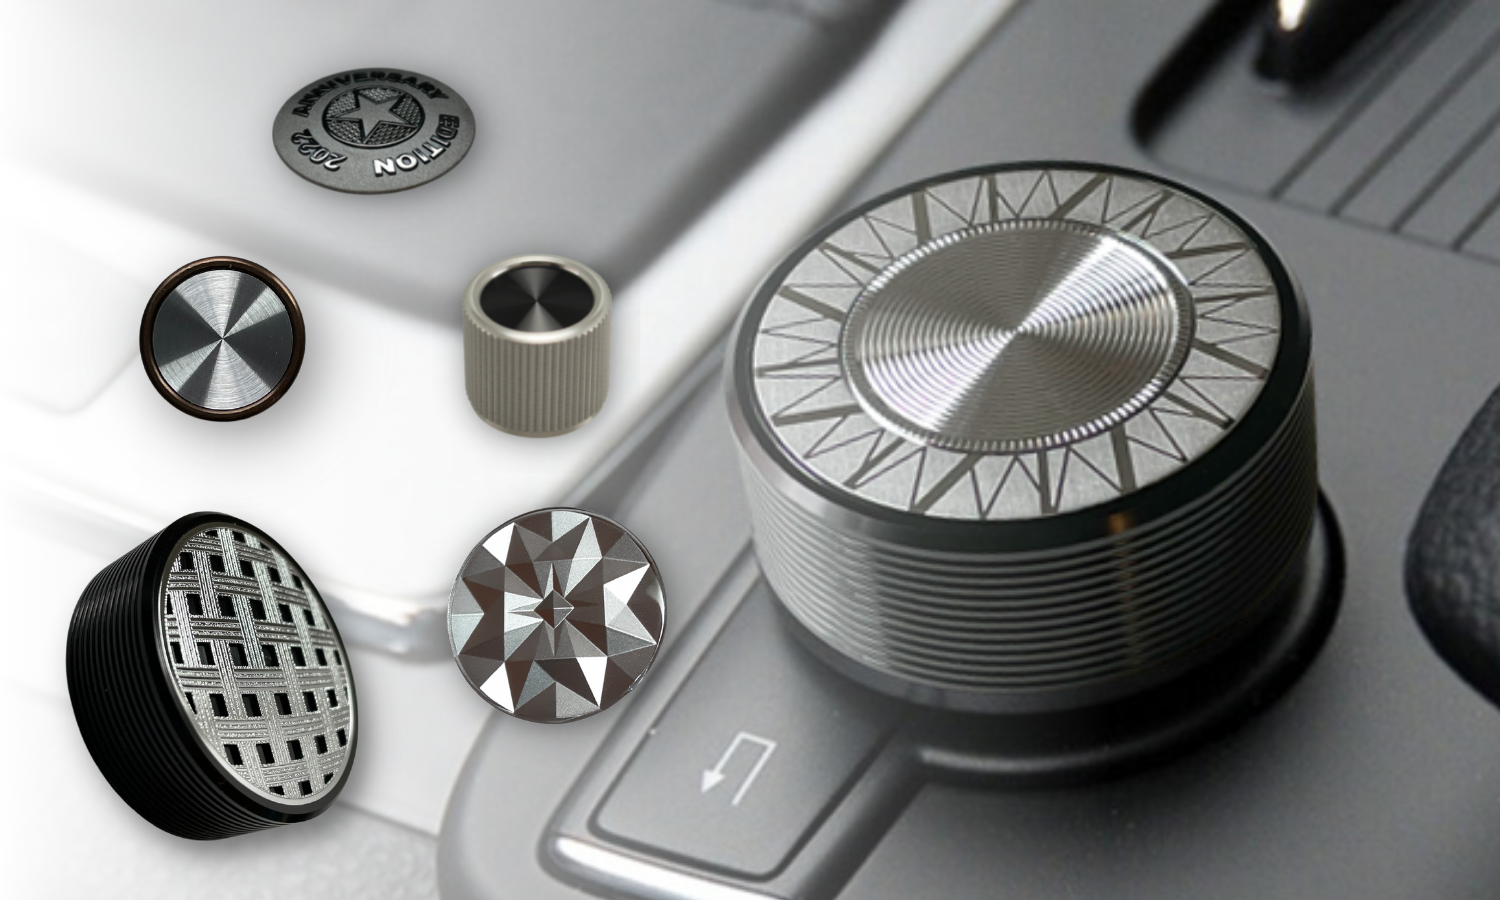 collage of audio knobs/dials with knurled textures, radial spins, starburst patterns, and other textures on the top surface